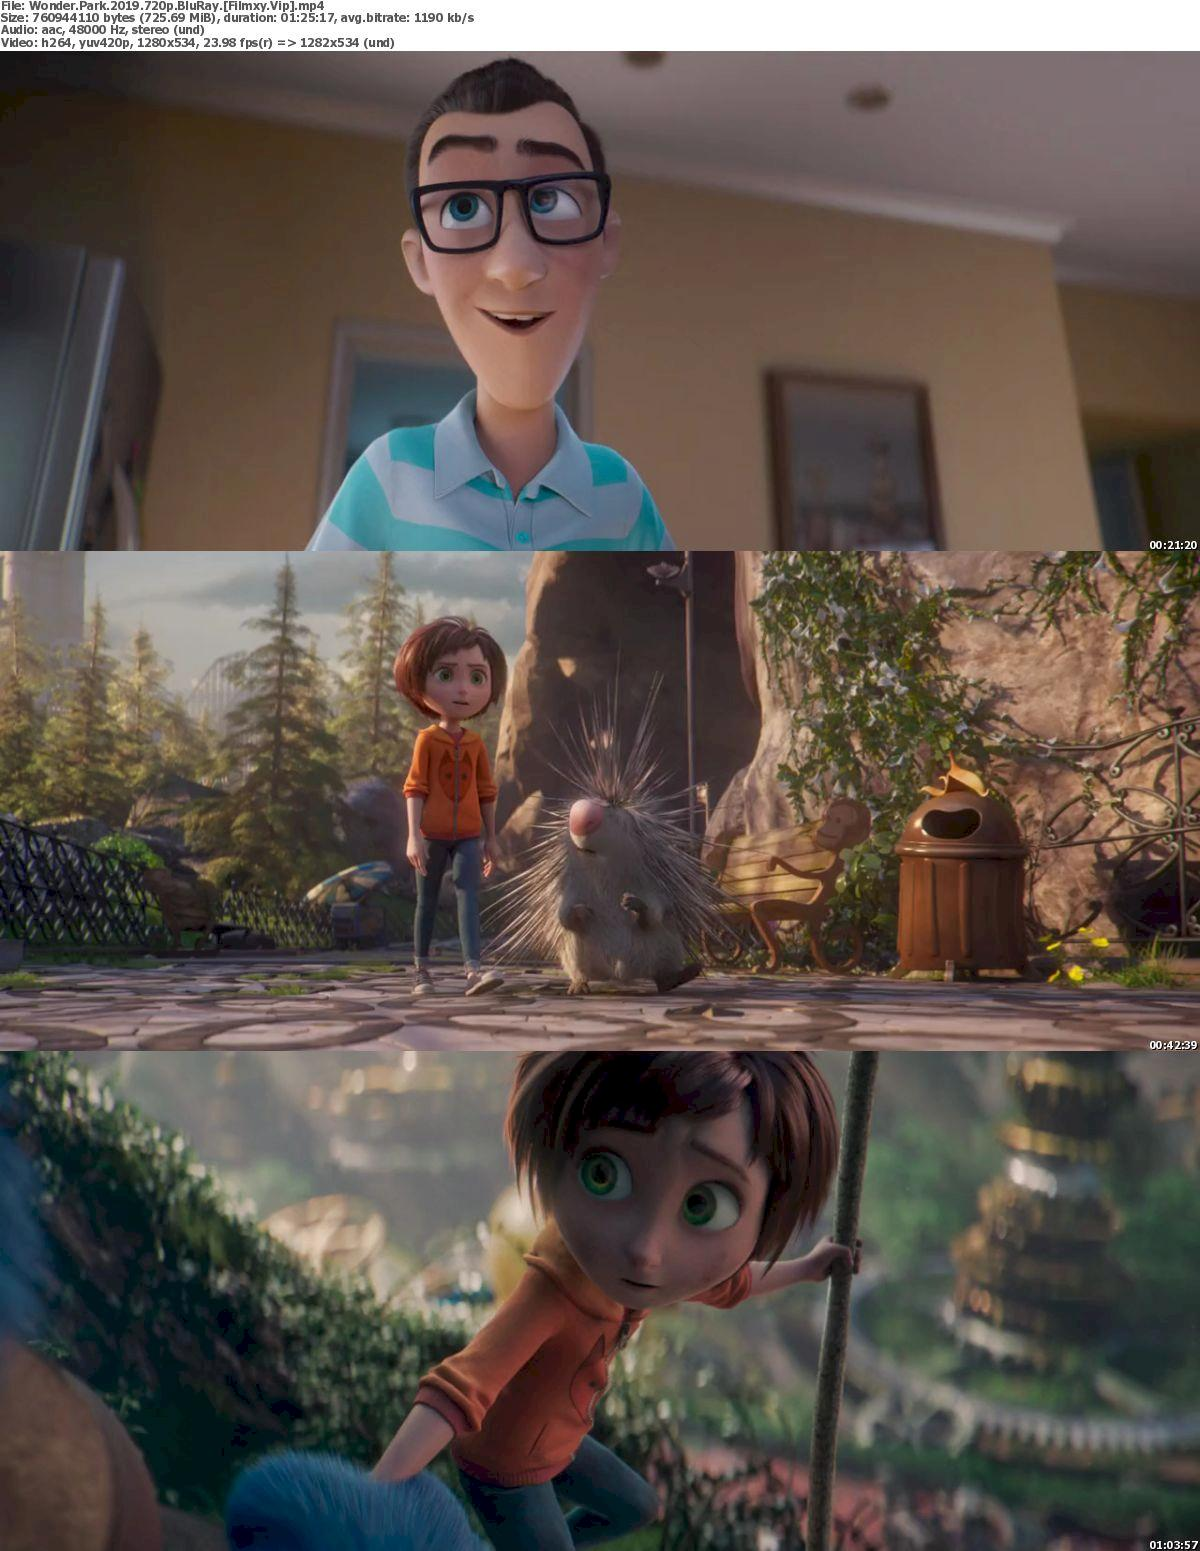 Wonder Park (2019) [720p & 1080p] Bluray Free Movie Watch Online & Download 720p Screenshot